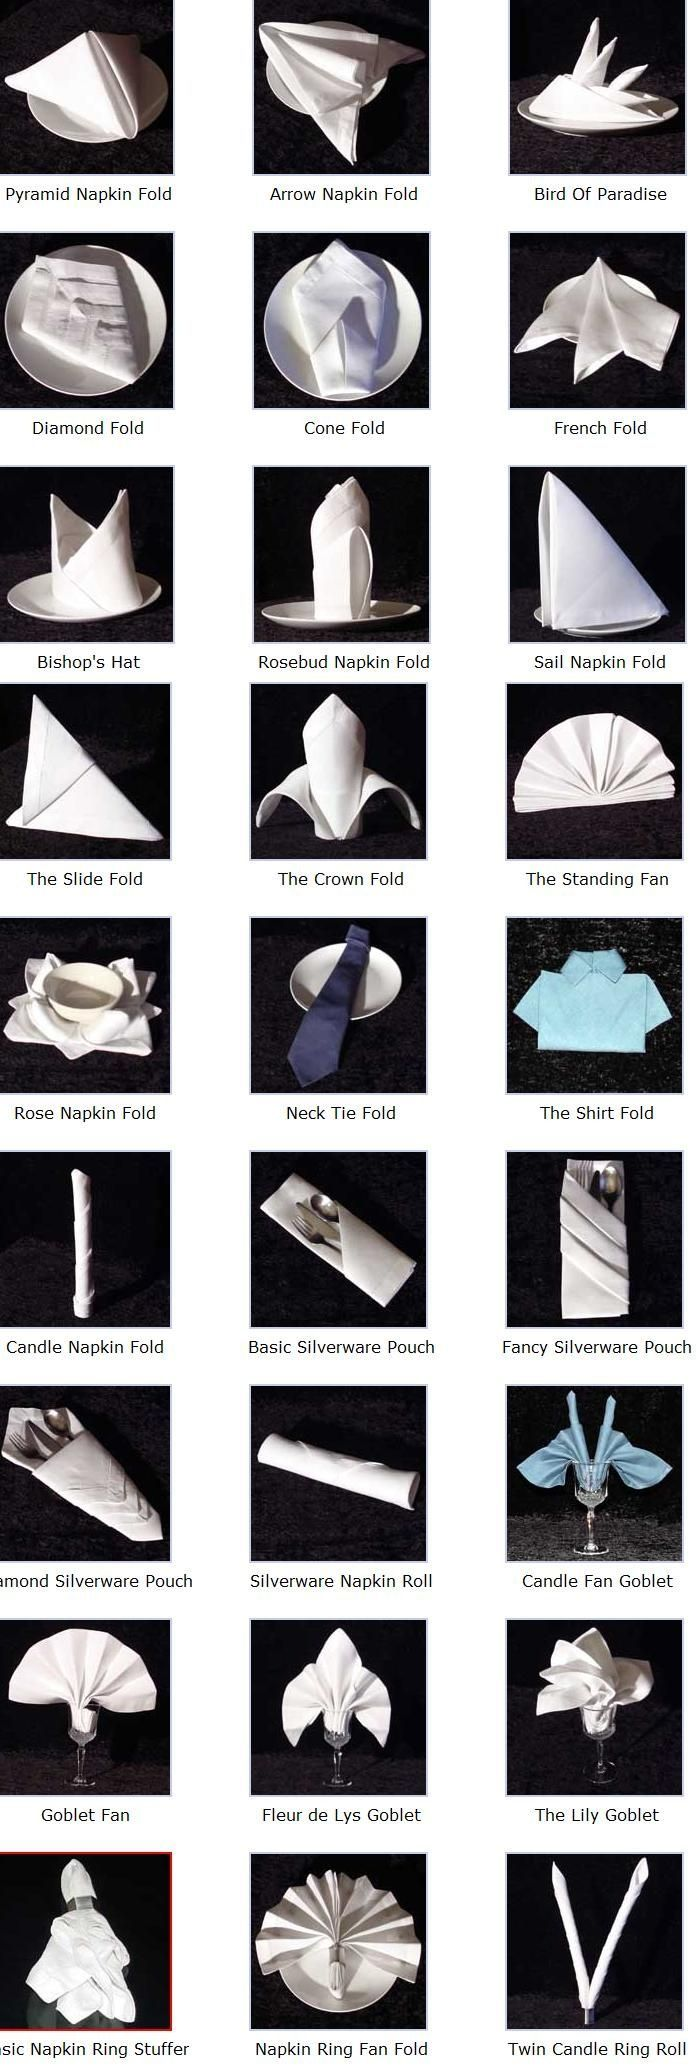 DIY your photo charms, 100% compatible with Pandora bracelets. Make your gifts special. How to fold napkins many ways. This will come in handy during your holiday events! Click on a napkin design below for detailed folding instructions.